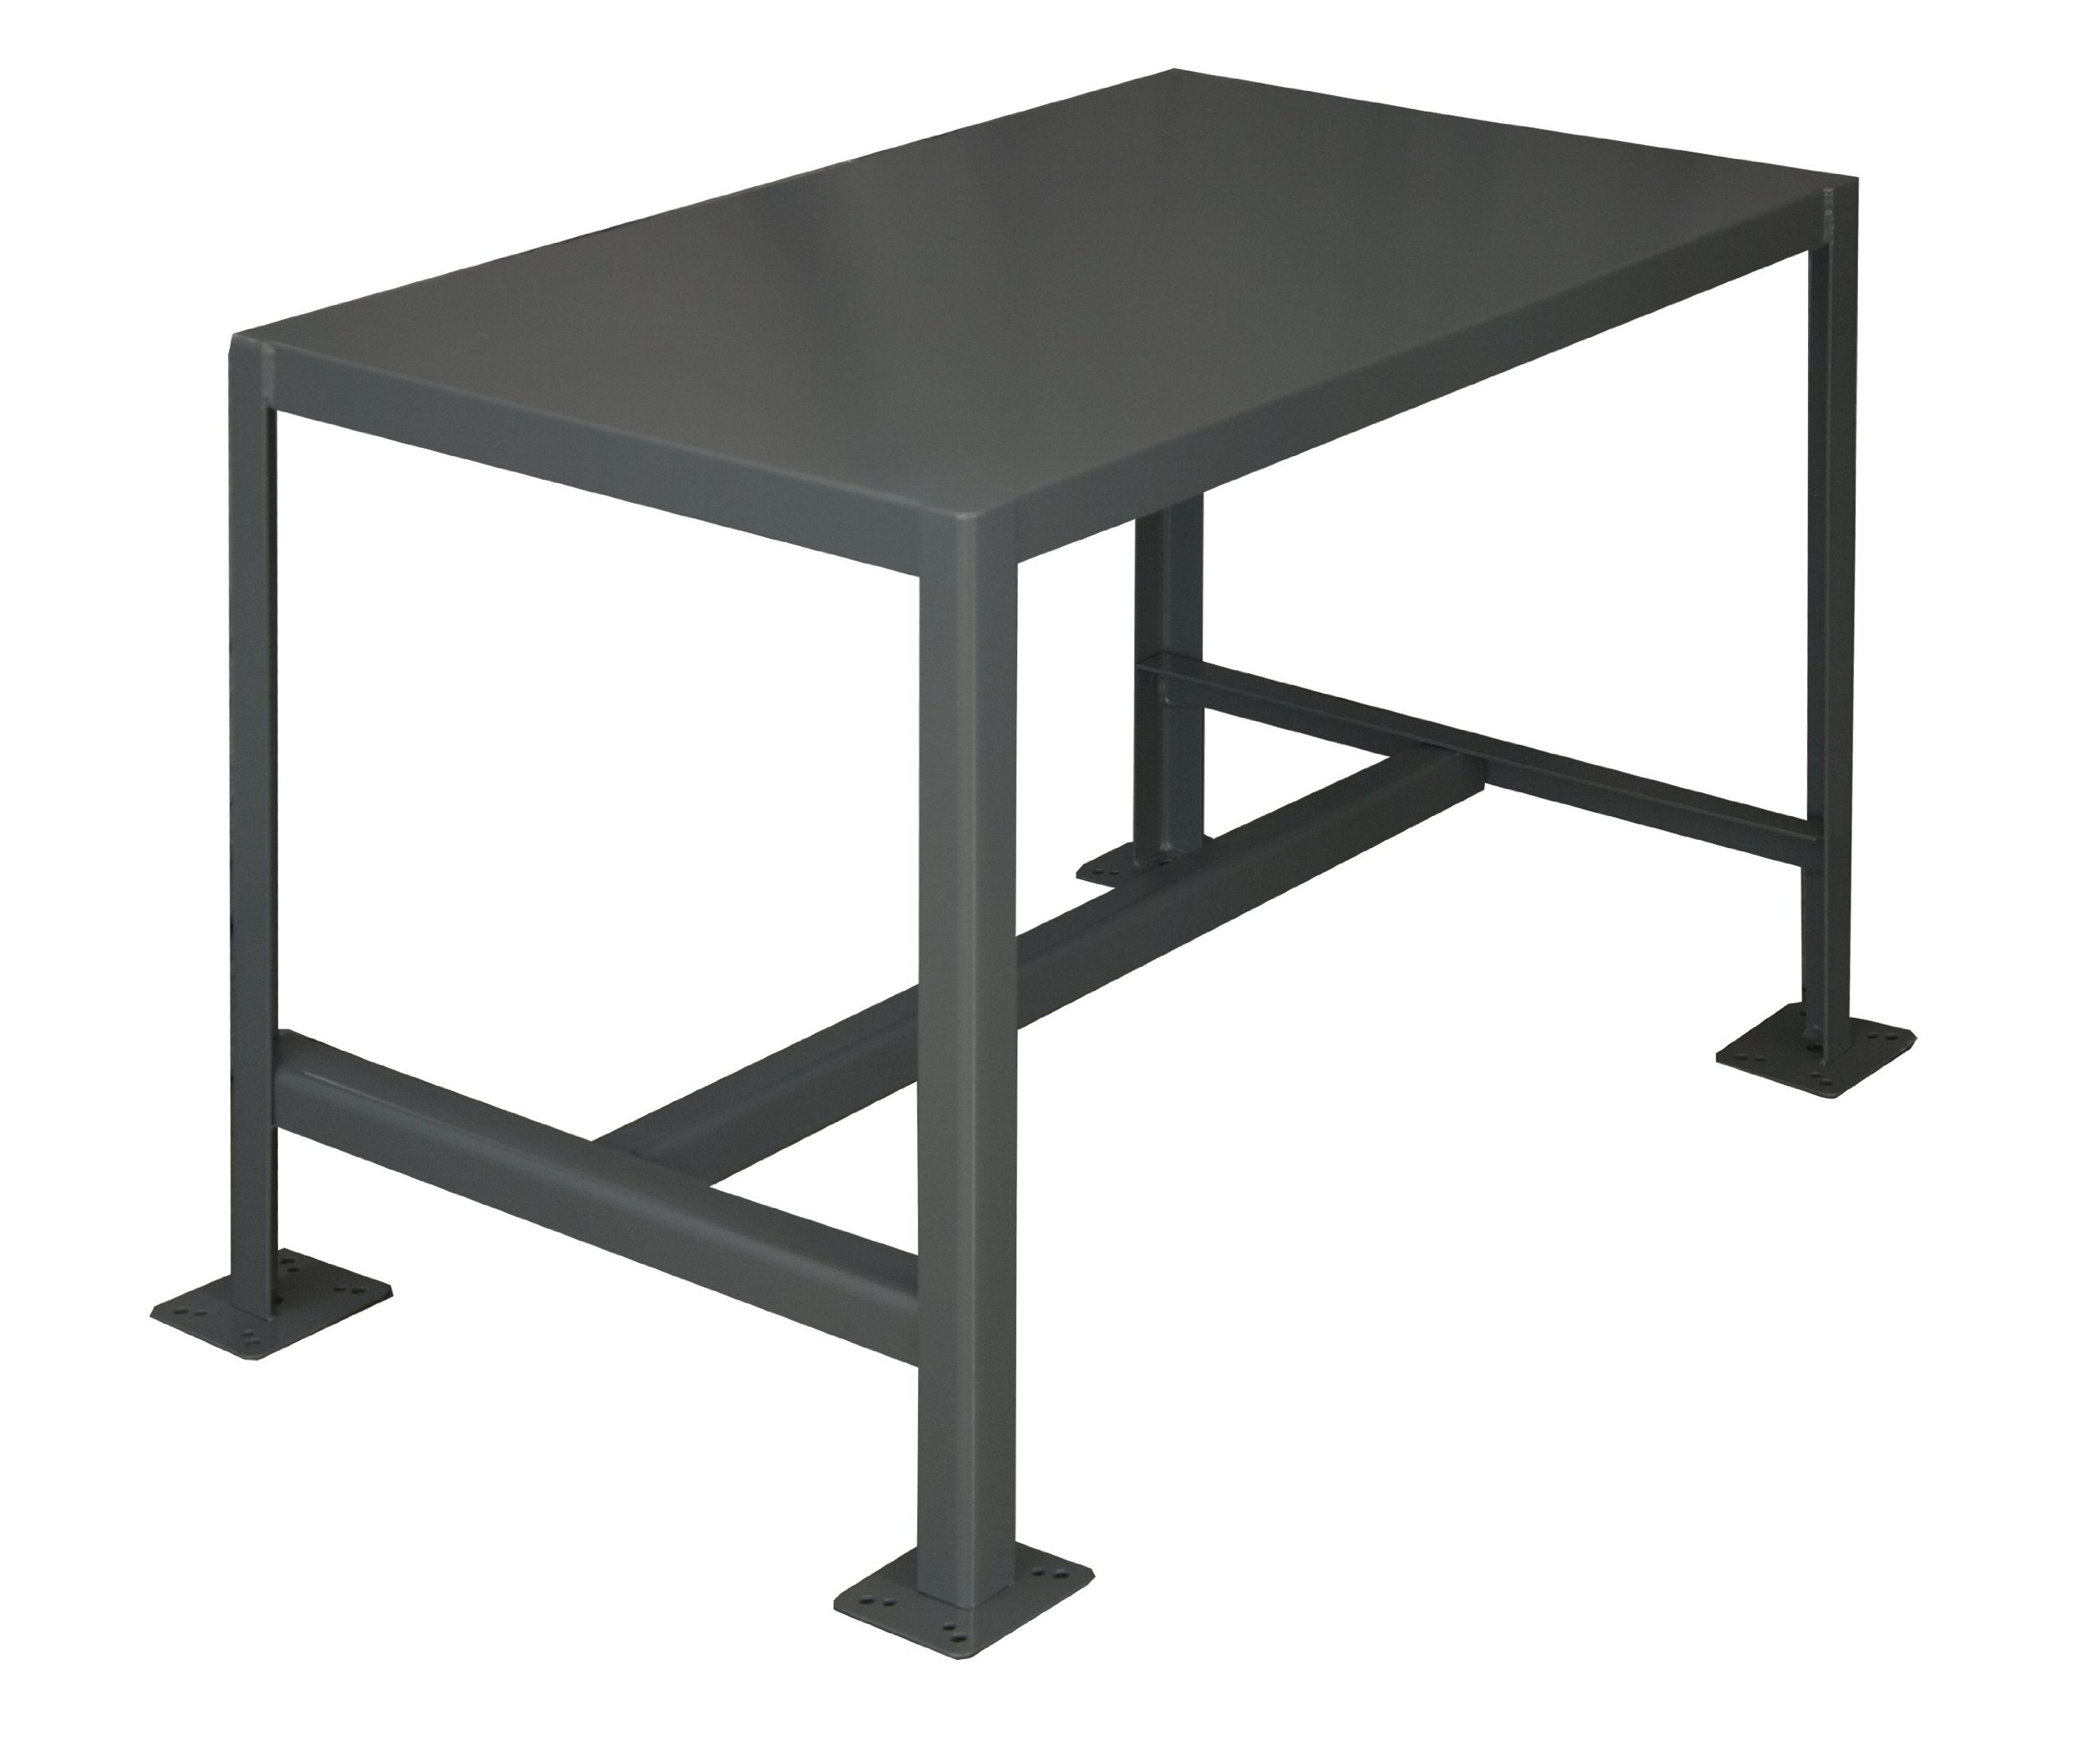 Durham Steel Medium Duty Machine Table, MT244836-2K195, 1 Shelves, 2000 lbs Capacity, 48'' Length x 24'' Width x 36'' Height by Durham (Image #1)